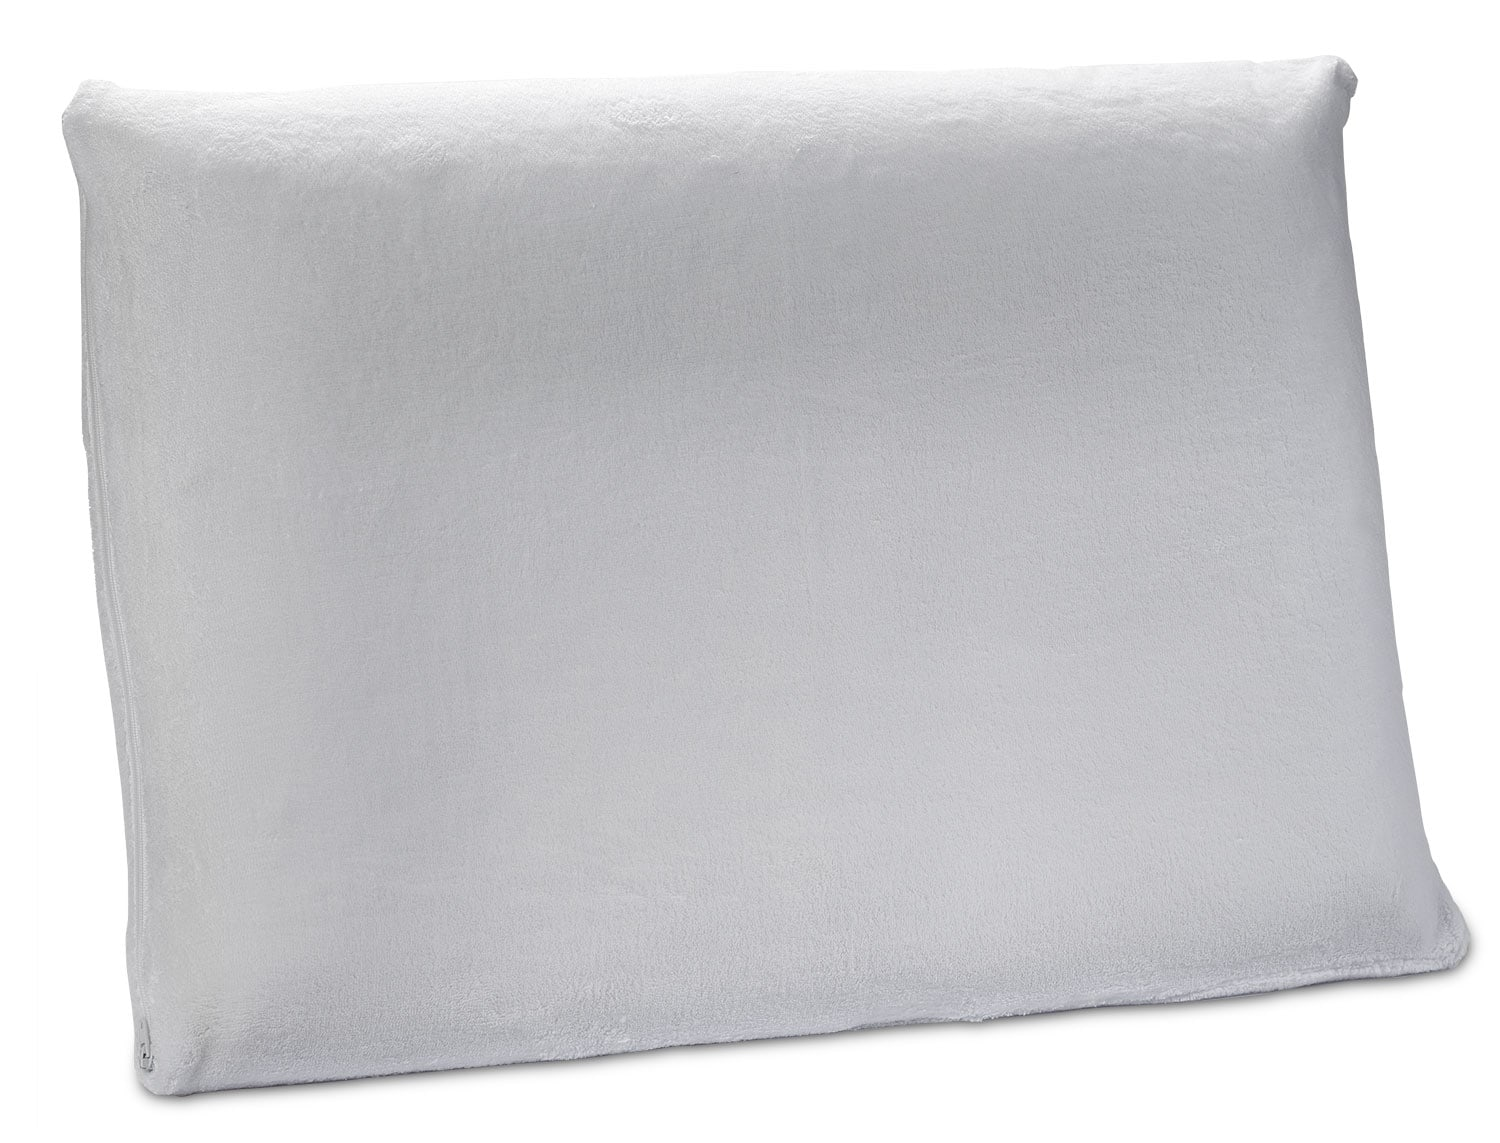 Mattresses and Bedding - Ergo Latex Standard Pillow